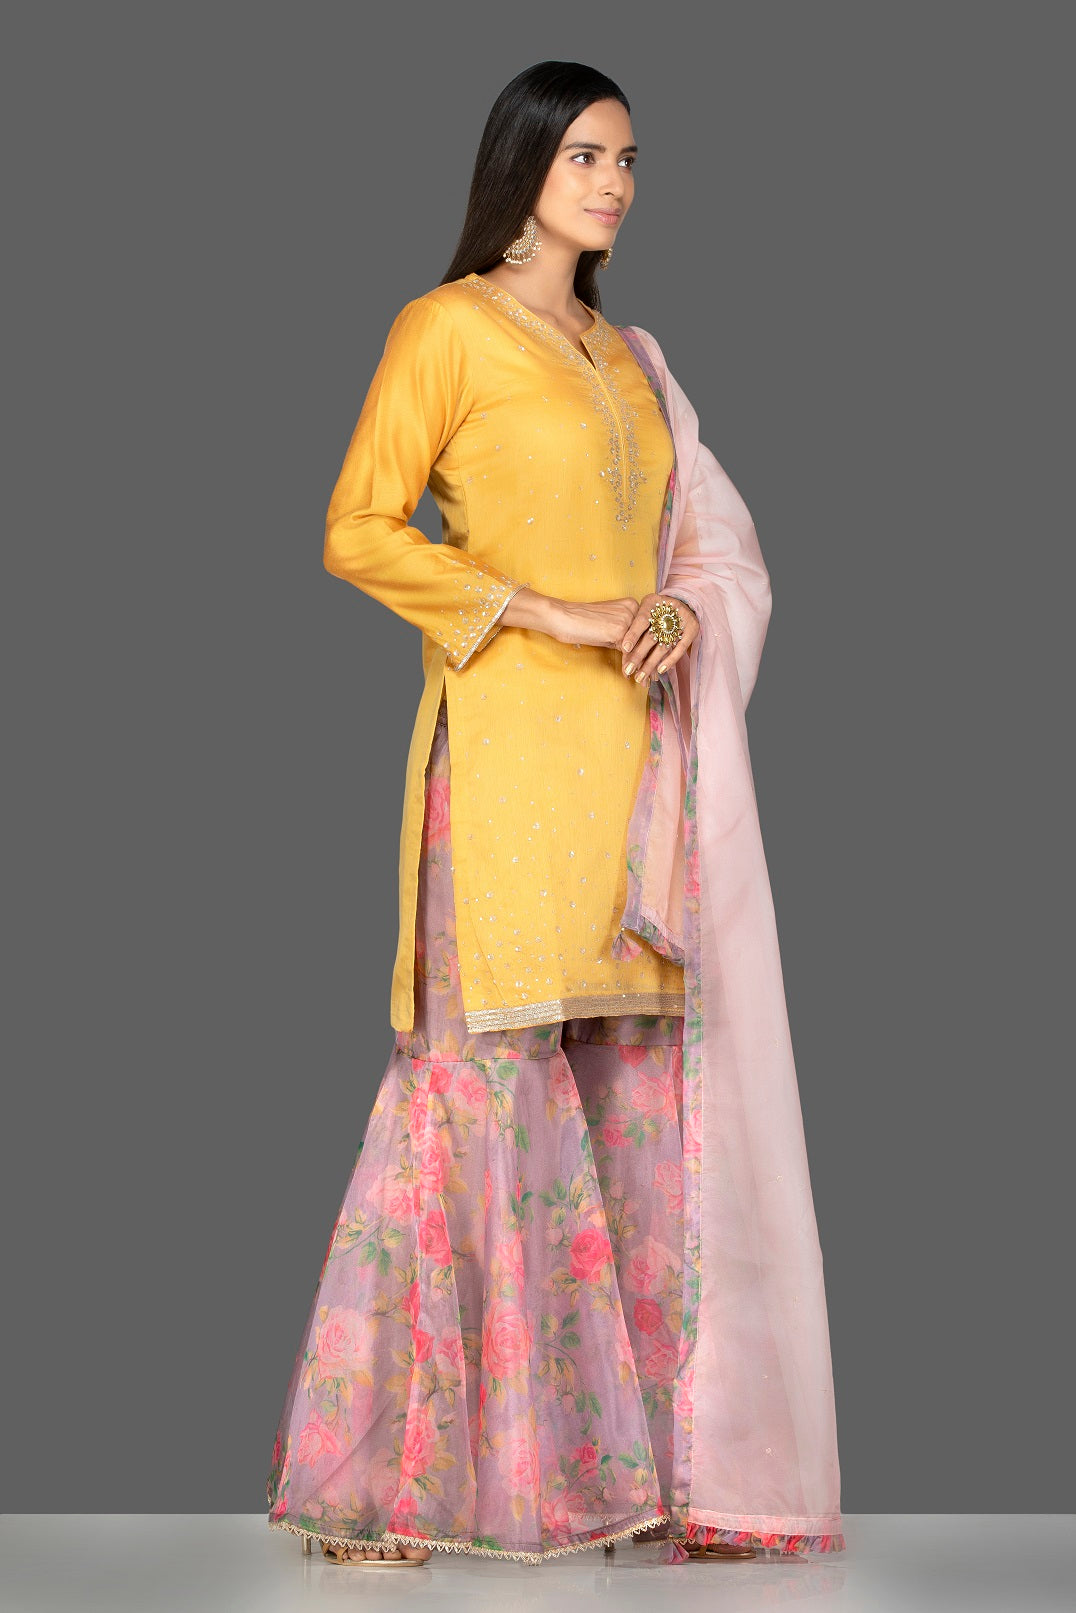 Buy gorgeous yellow embroidered suit online in USA with pink floral palazzo and pink dupatta. Flaunt ethnic fashion on weddings and festive occasions with latest designer lehengas, Indian dresses, traditional Anarkali suits from Pure Elegance Indian clothing store in USA.-side